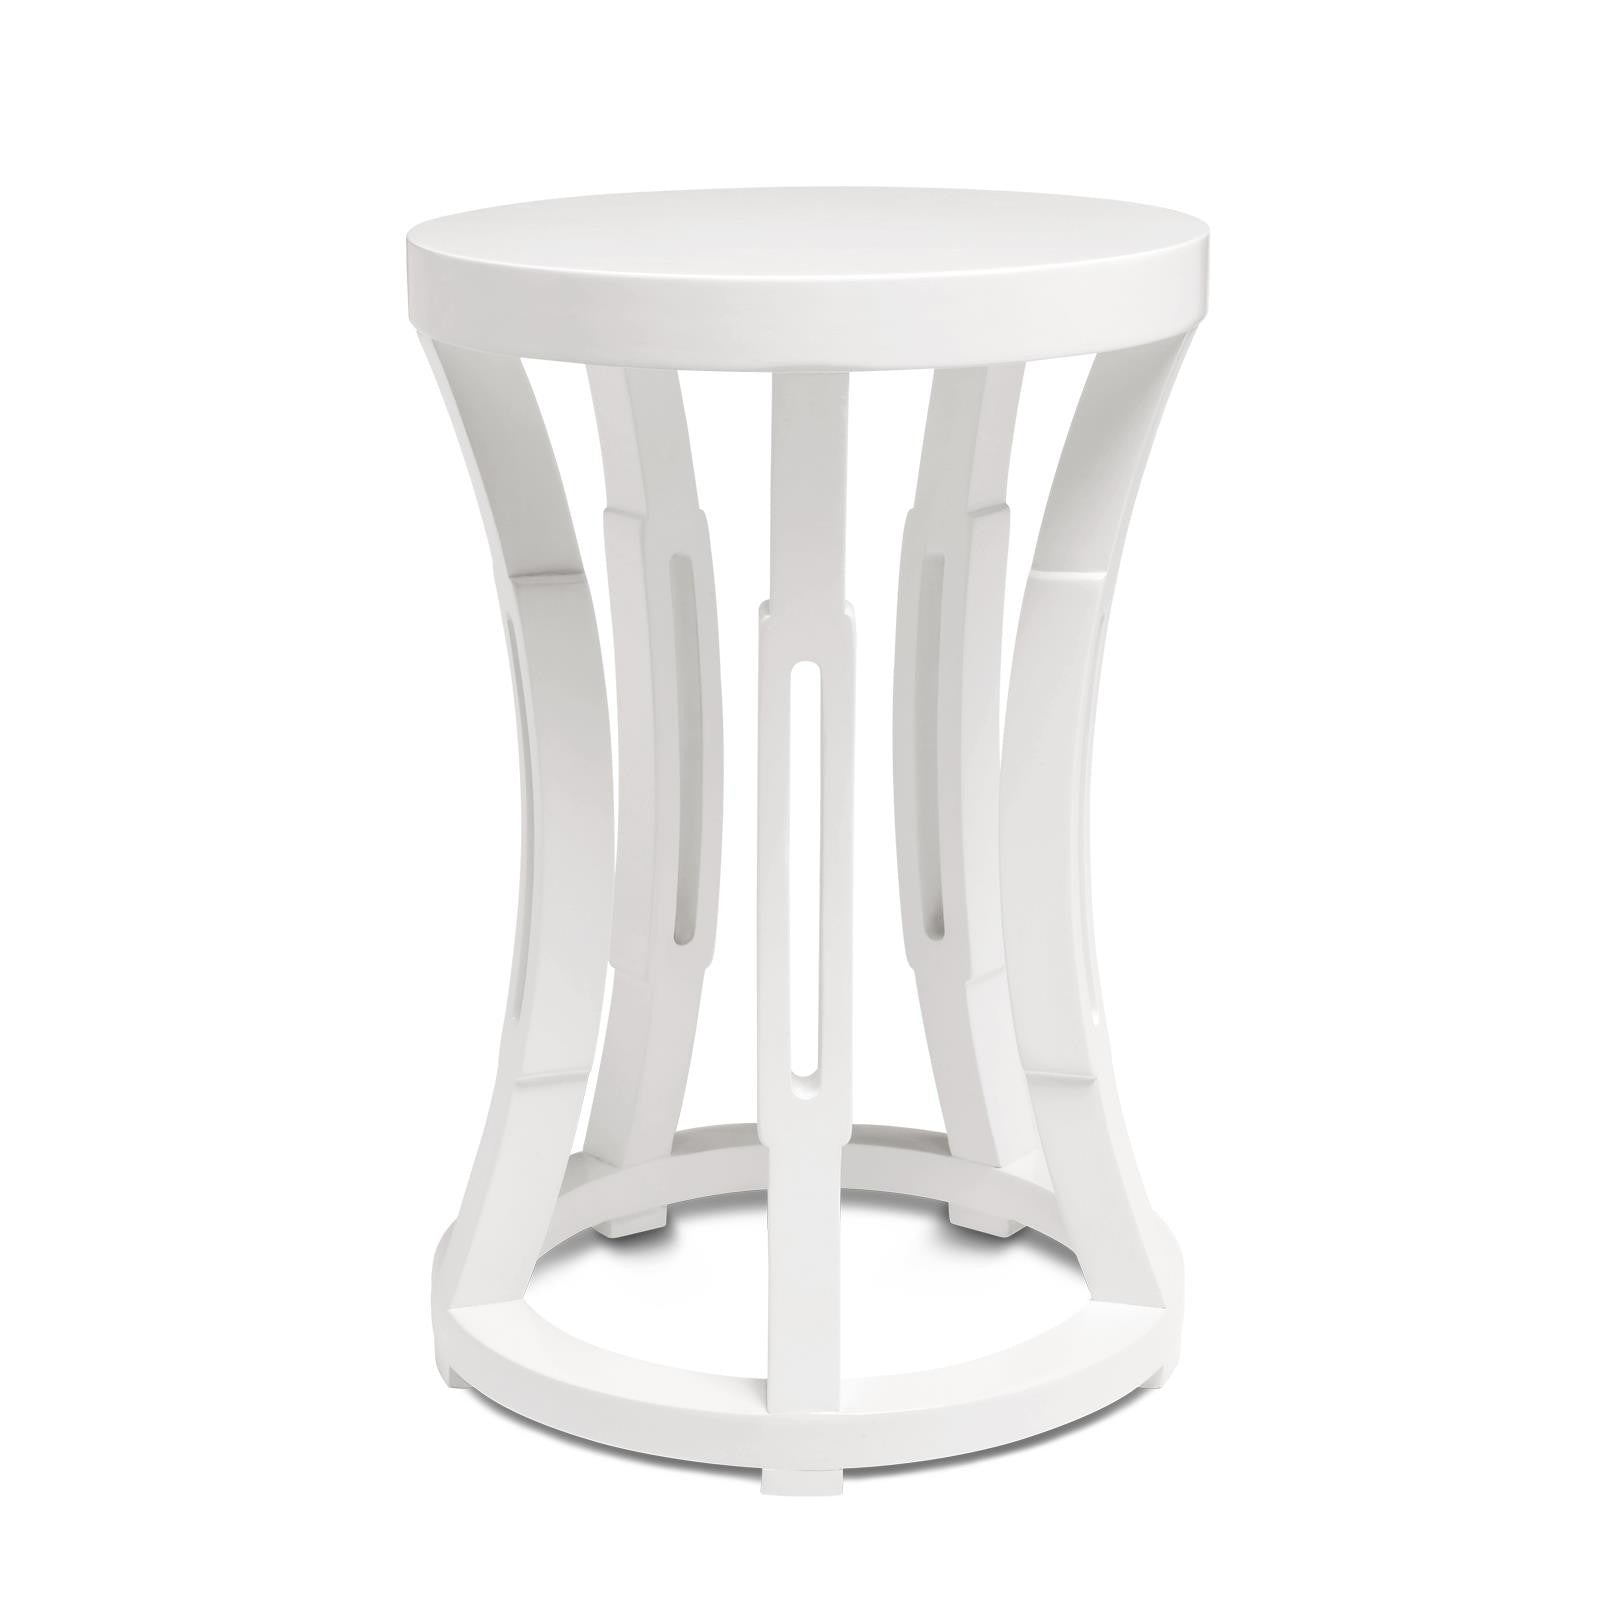 true table casual tables end ace furniture white p